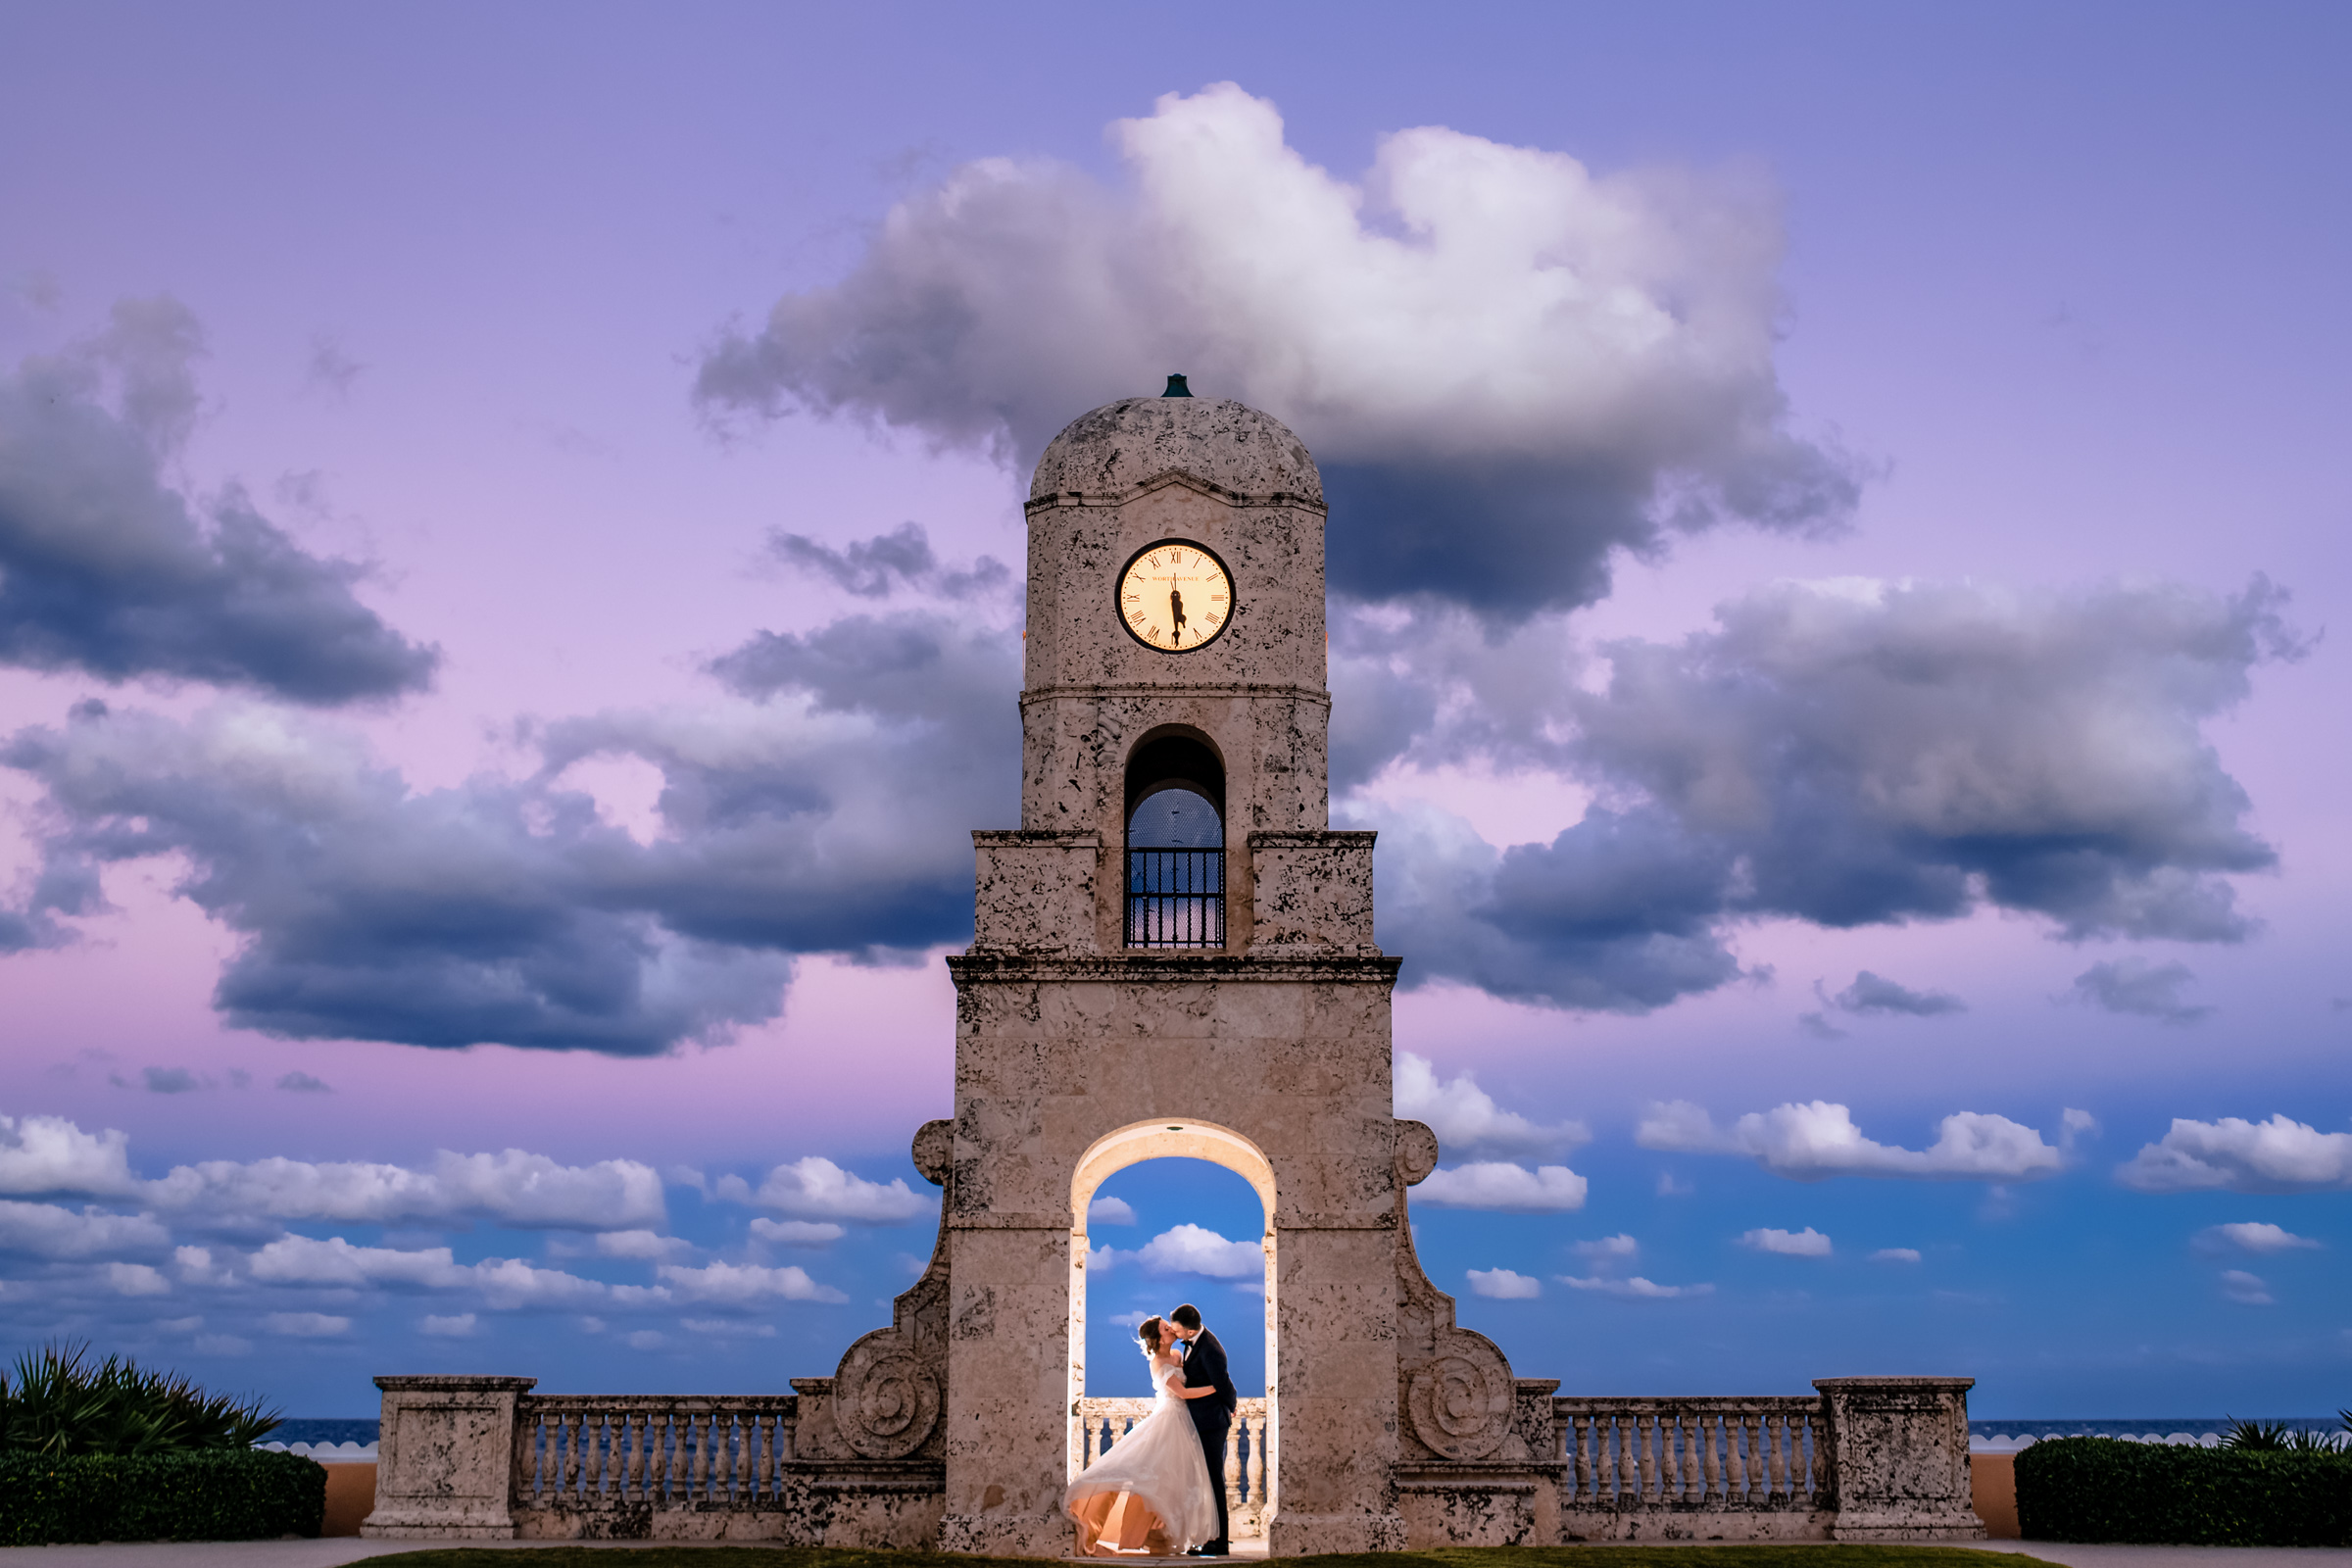 Bride and Groom at sunset under clock tower - photo by Michael Freas